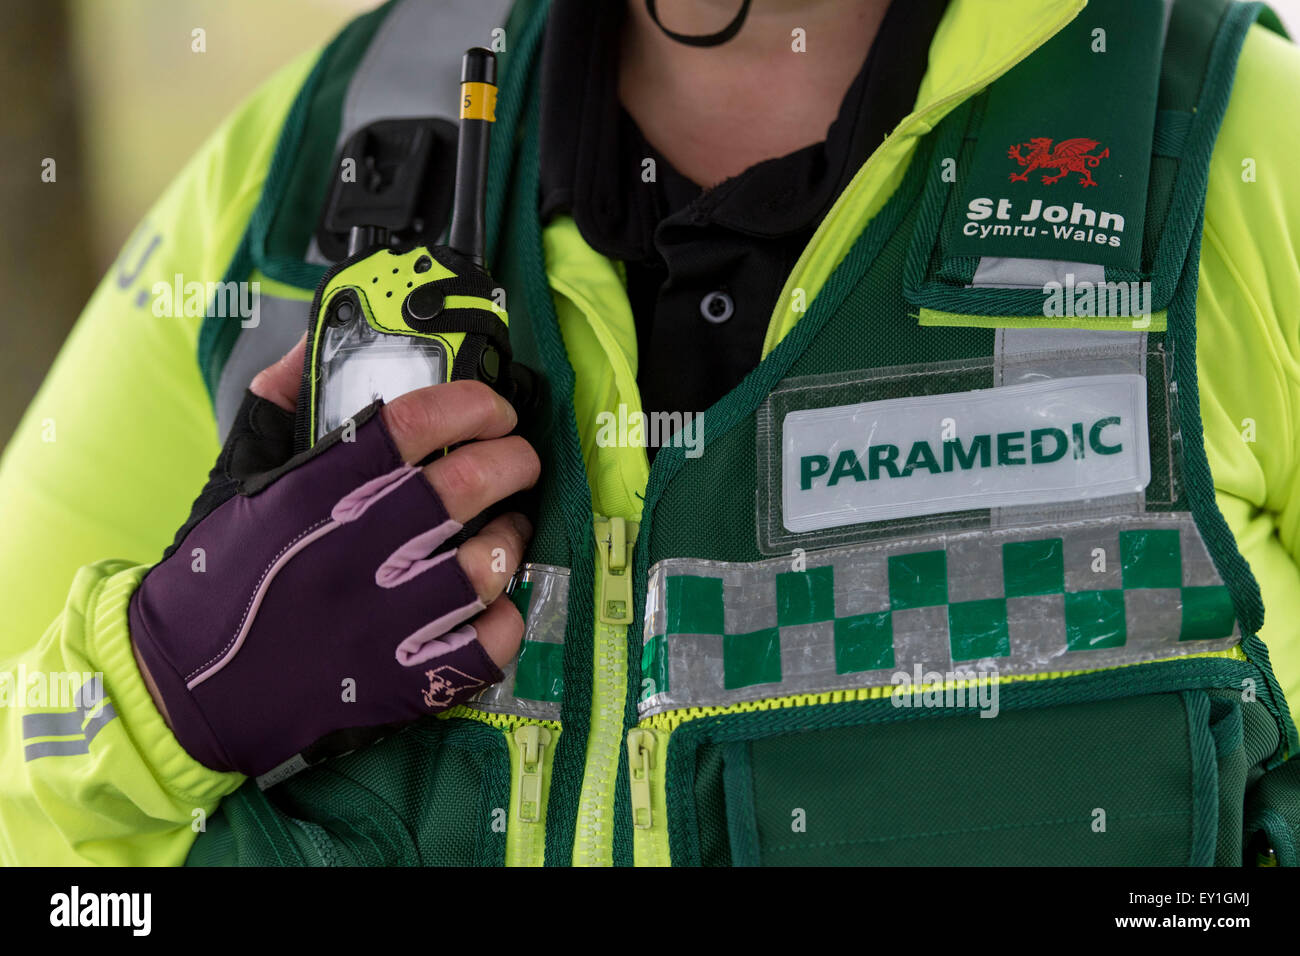 A closeup of a Welsh paramedic / ambulance worker. The Welsh ambulance service are under pressure to improve response - Stock Image